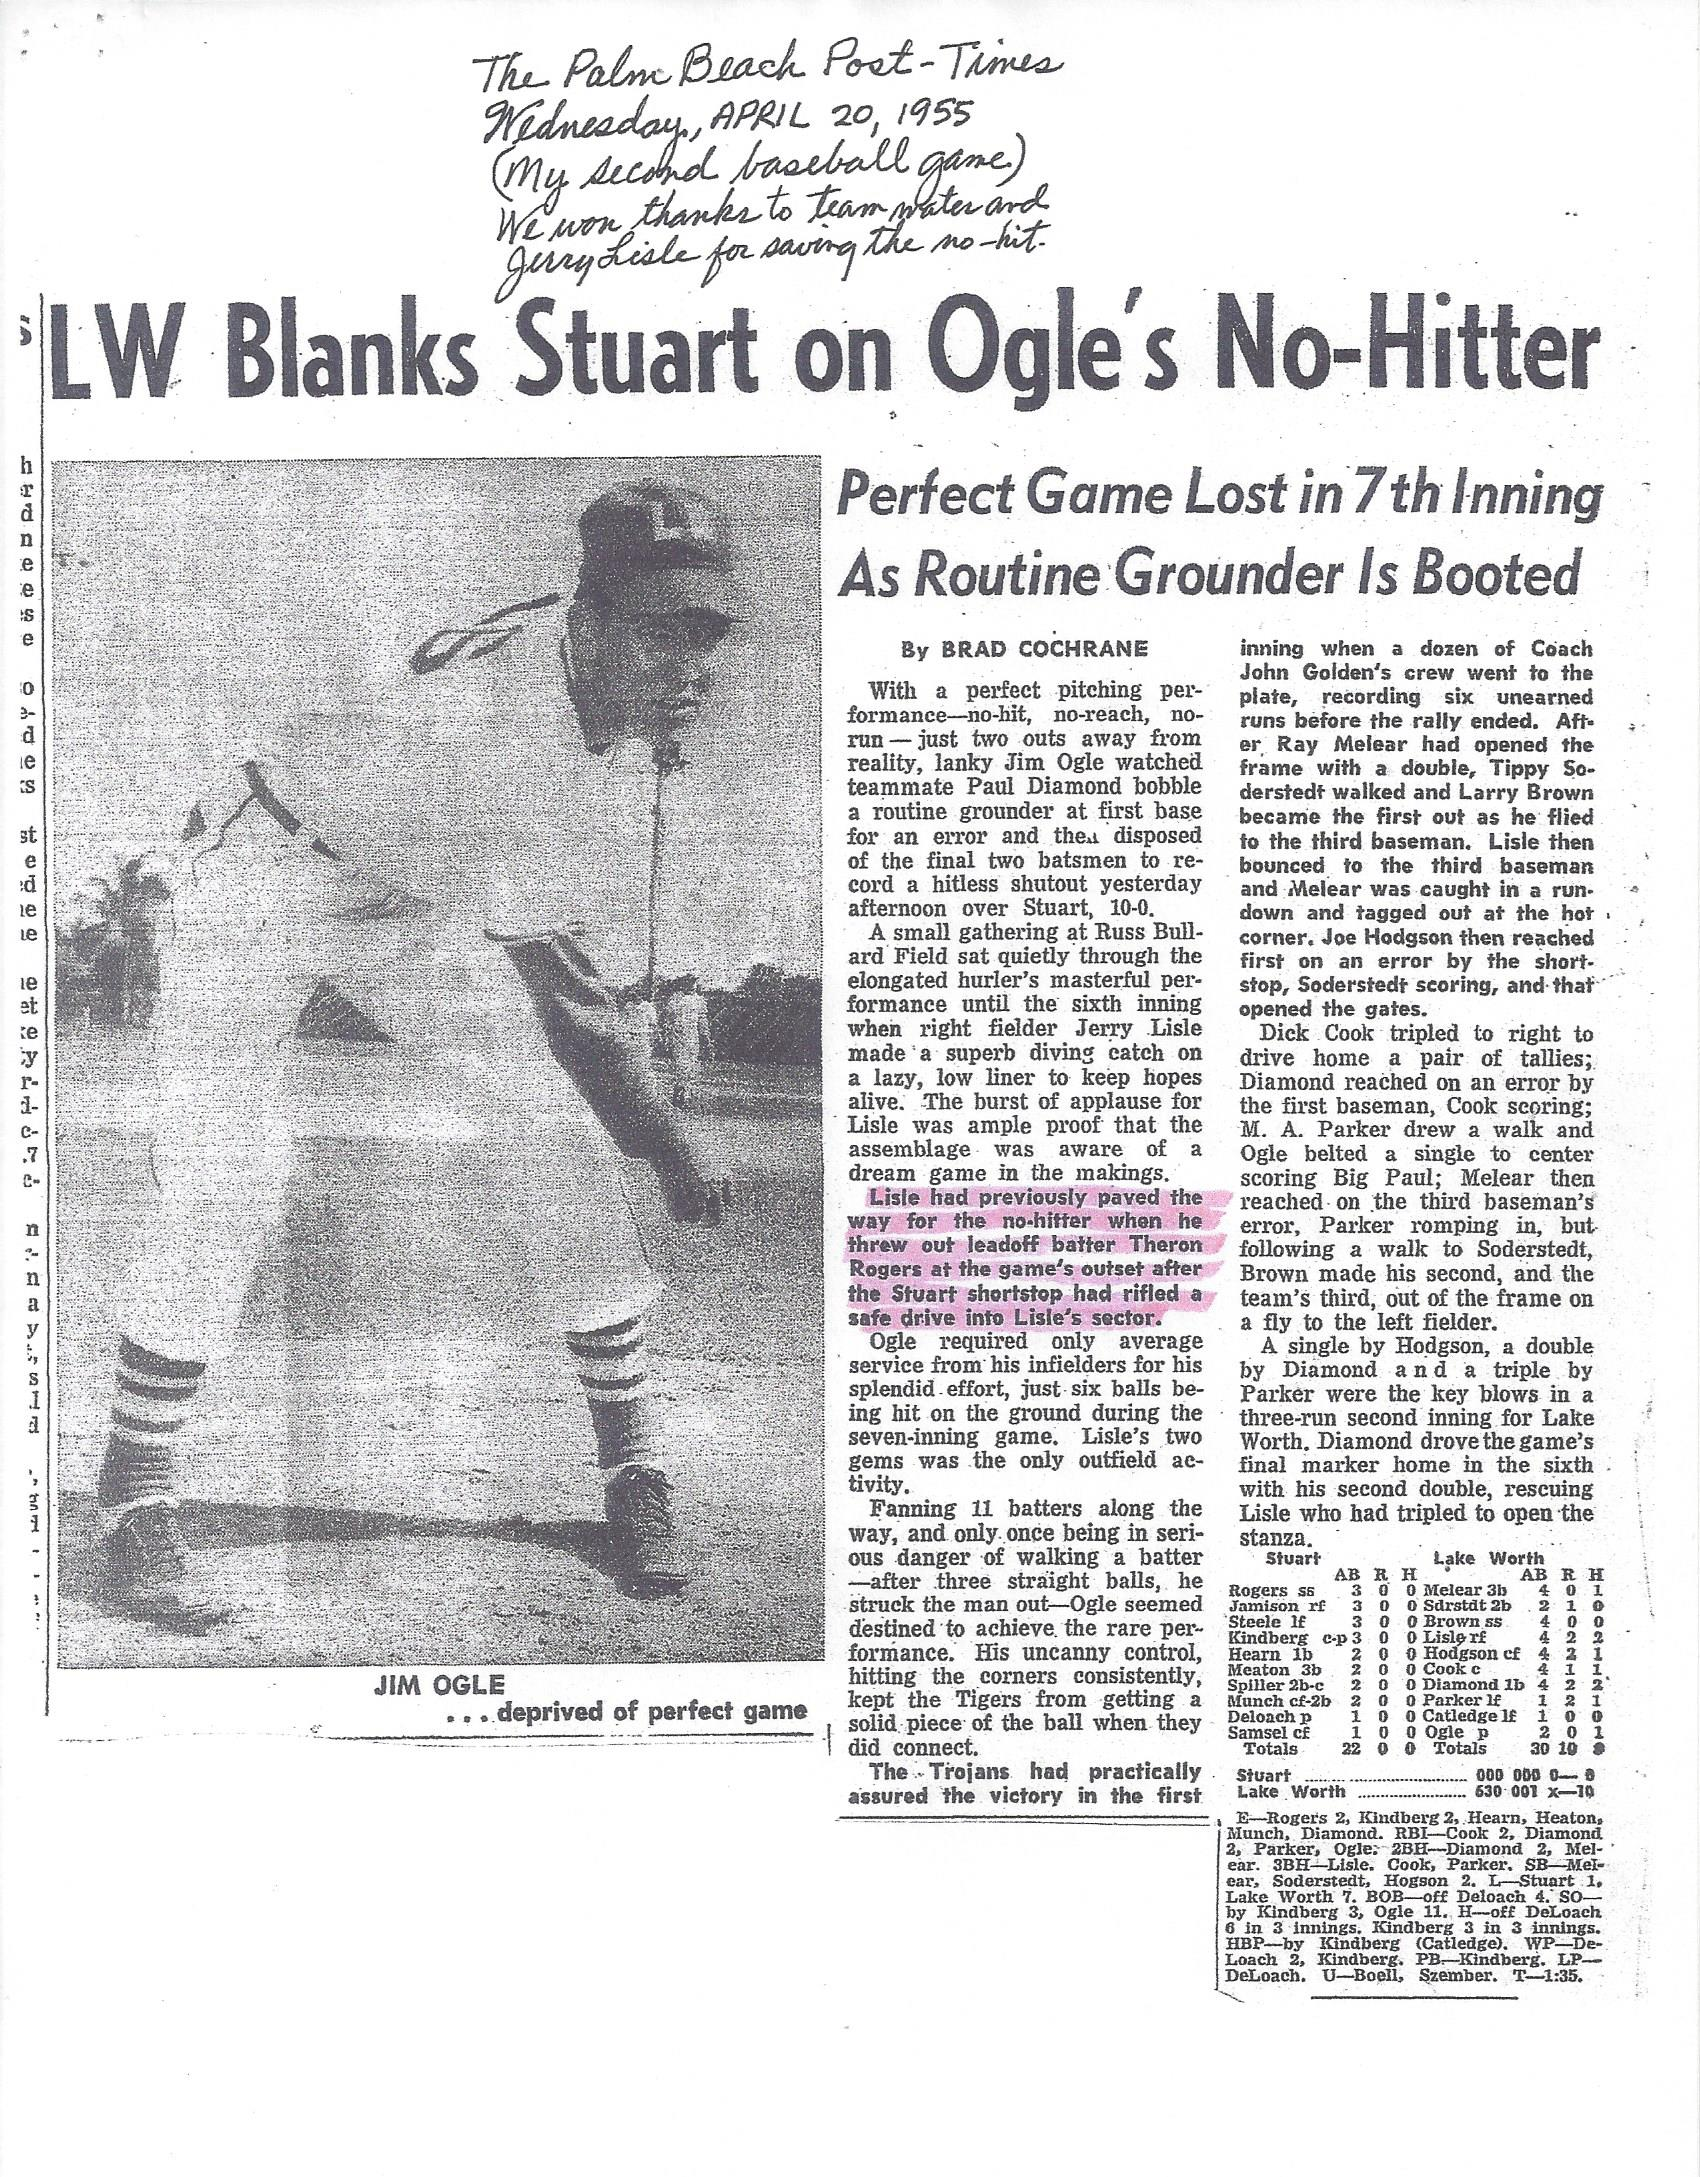 Newspaper clipping of Jim's NO-HITTER he pitched for his high school's baseball team.